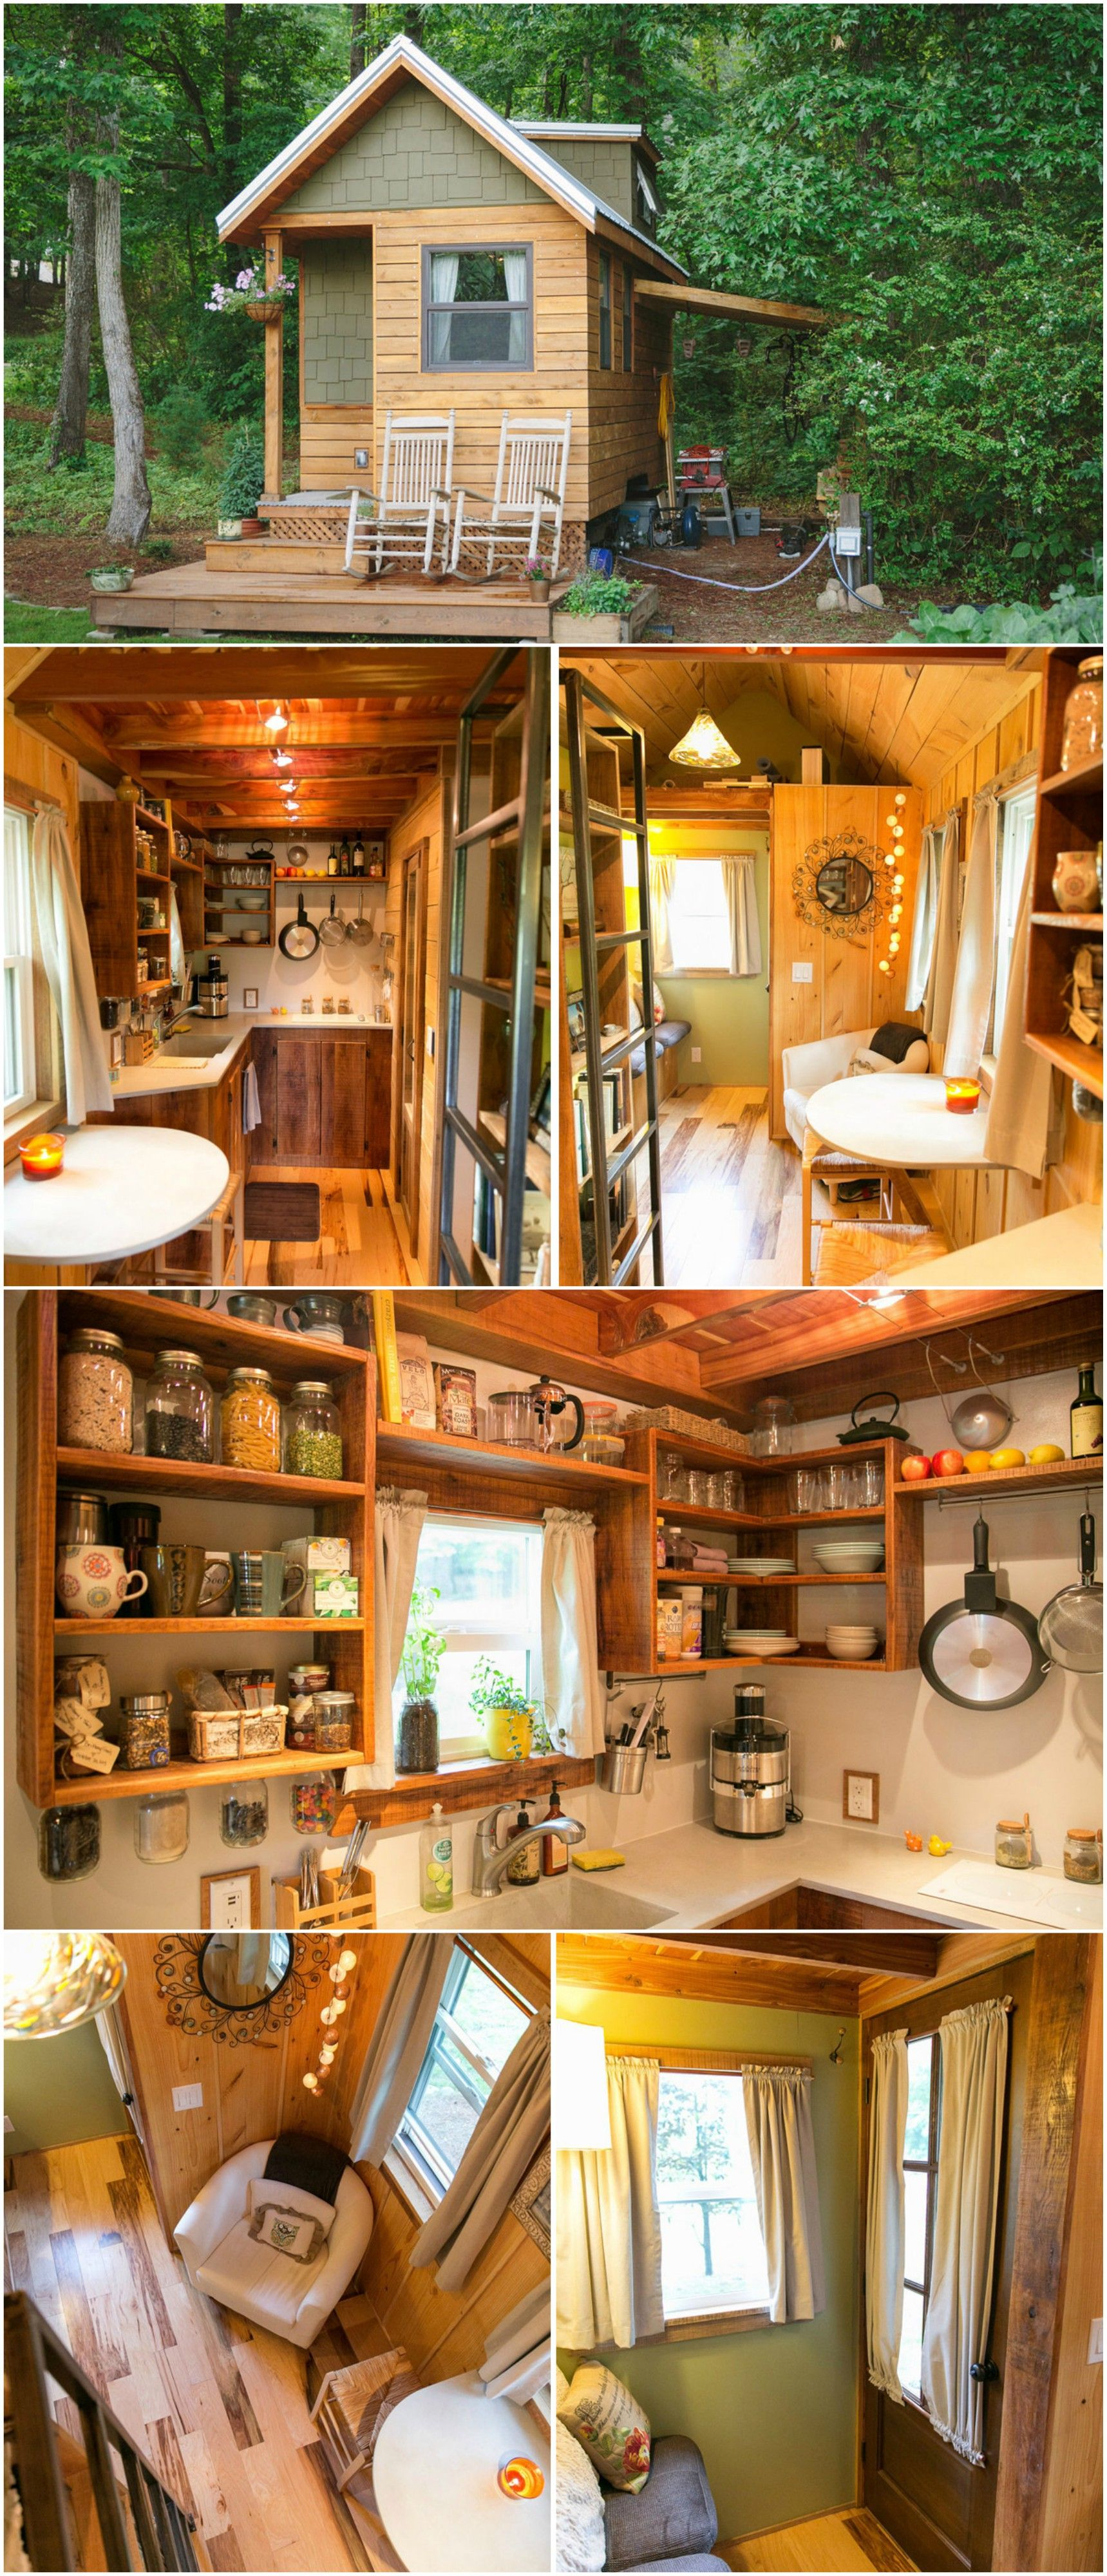 agreeable tiny house portland oregon. The Wind River Bungalow is a nice tiny house designed and built by  Tiny Homes traditional craftsman style uses hickory engineered hardwood